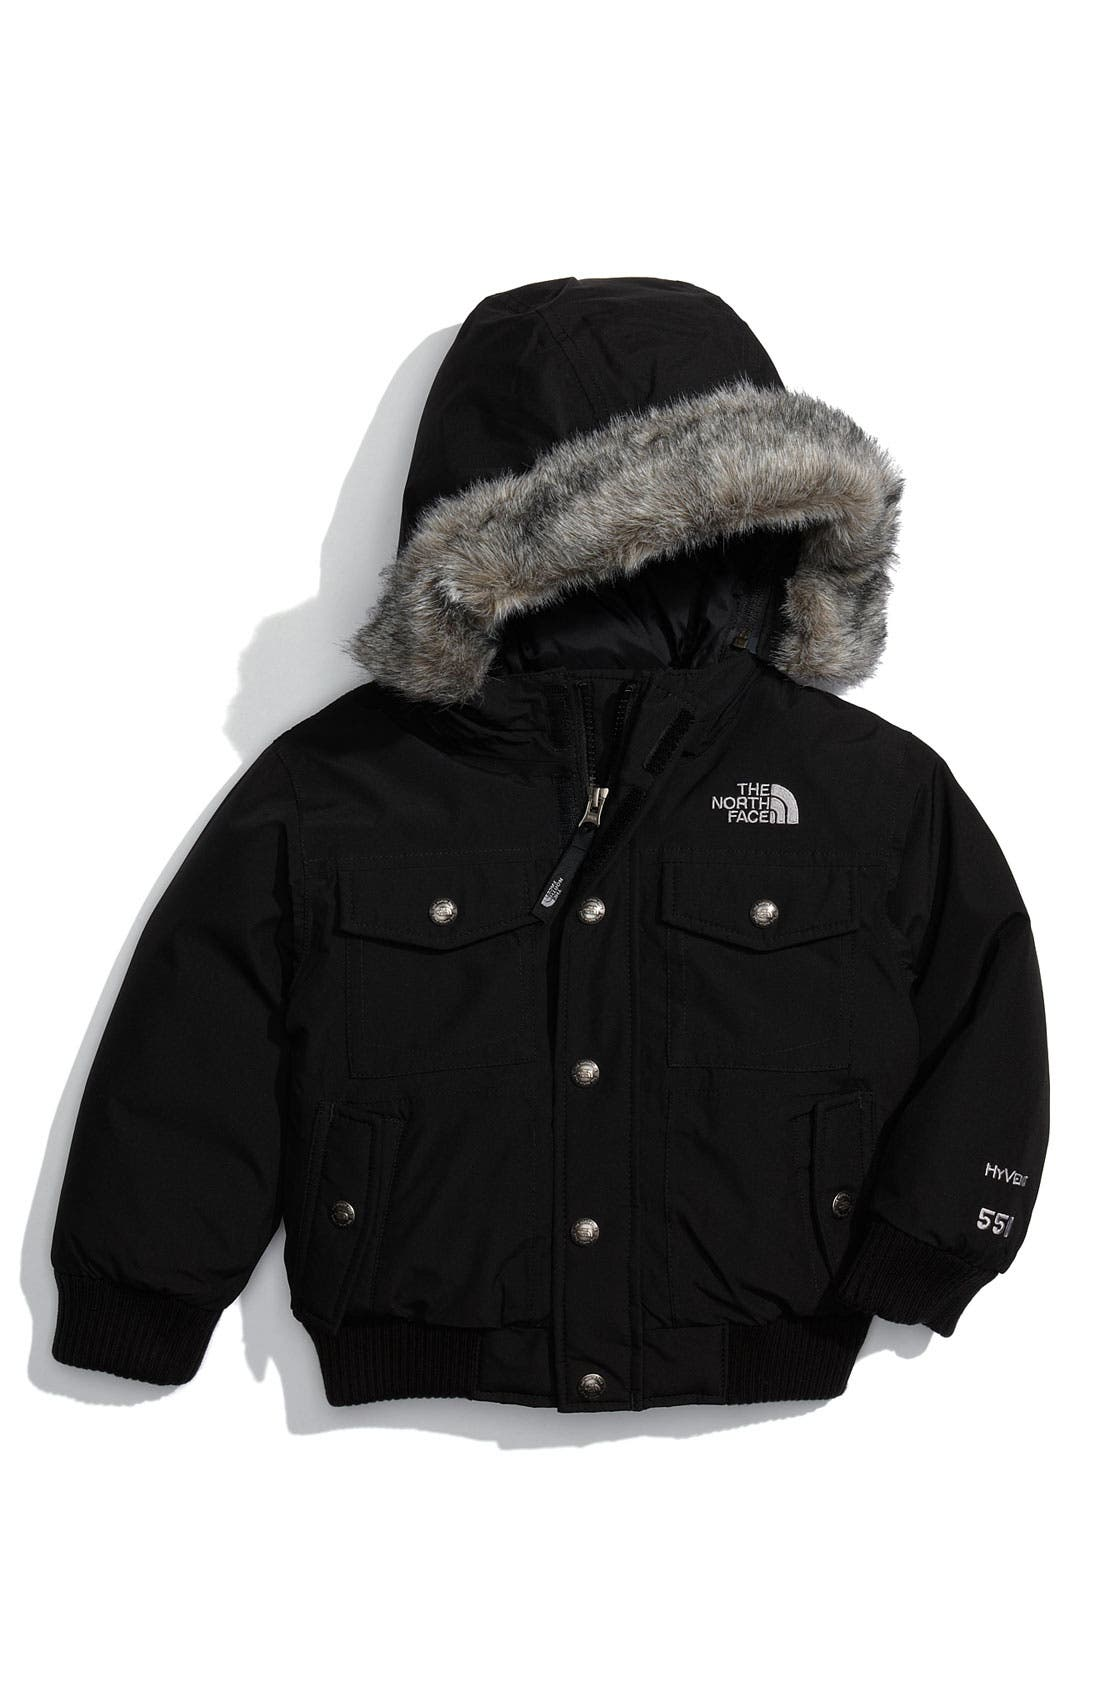 Main Image - The North Face 'Gotham' Down Jacket (Toddler)